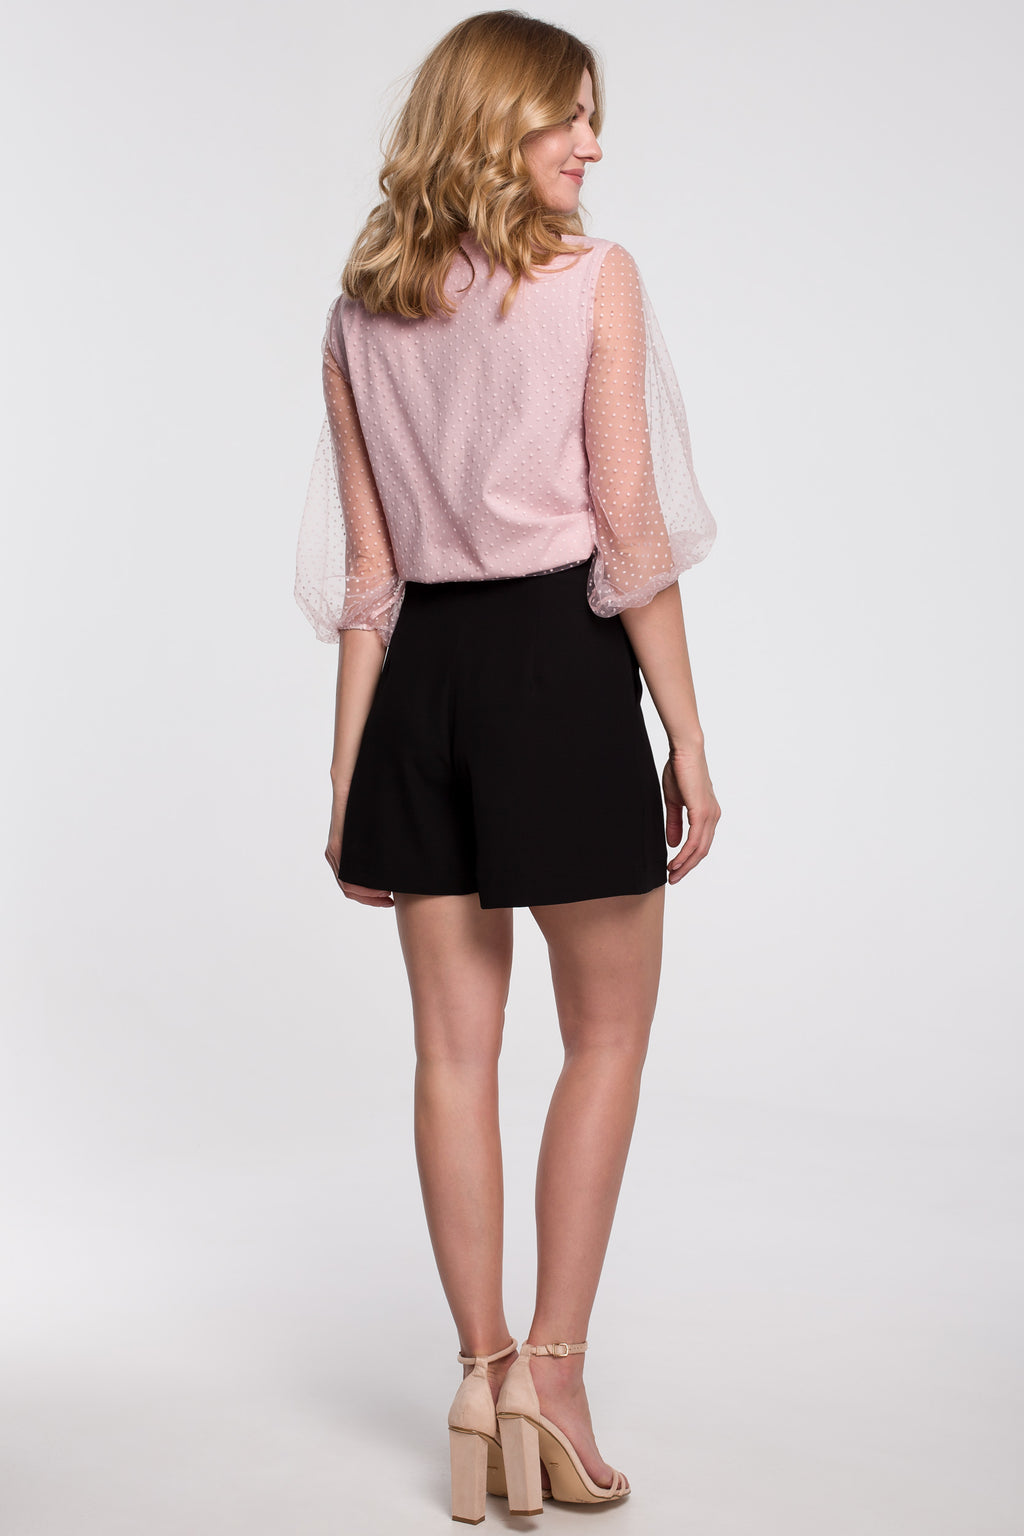 Black Relaxed Shorts With Front Pleats - So Chic Boutique